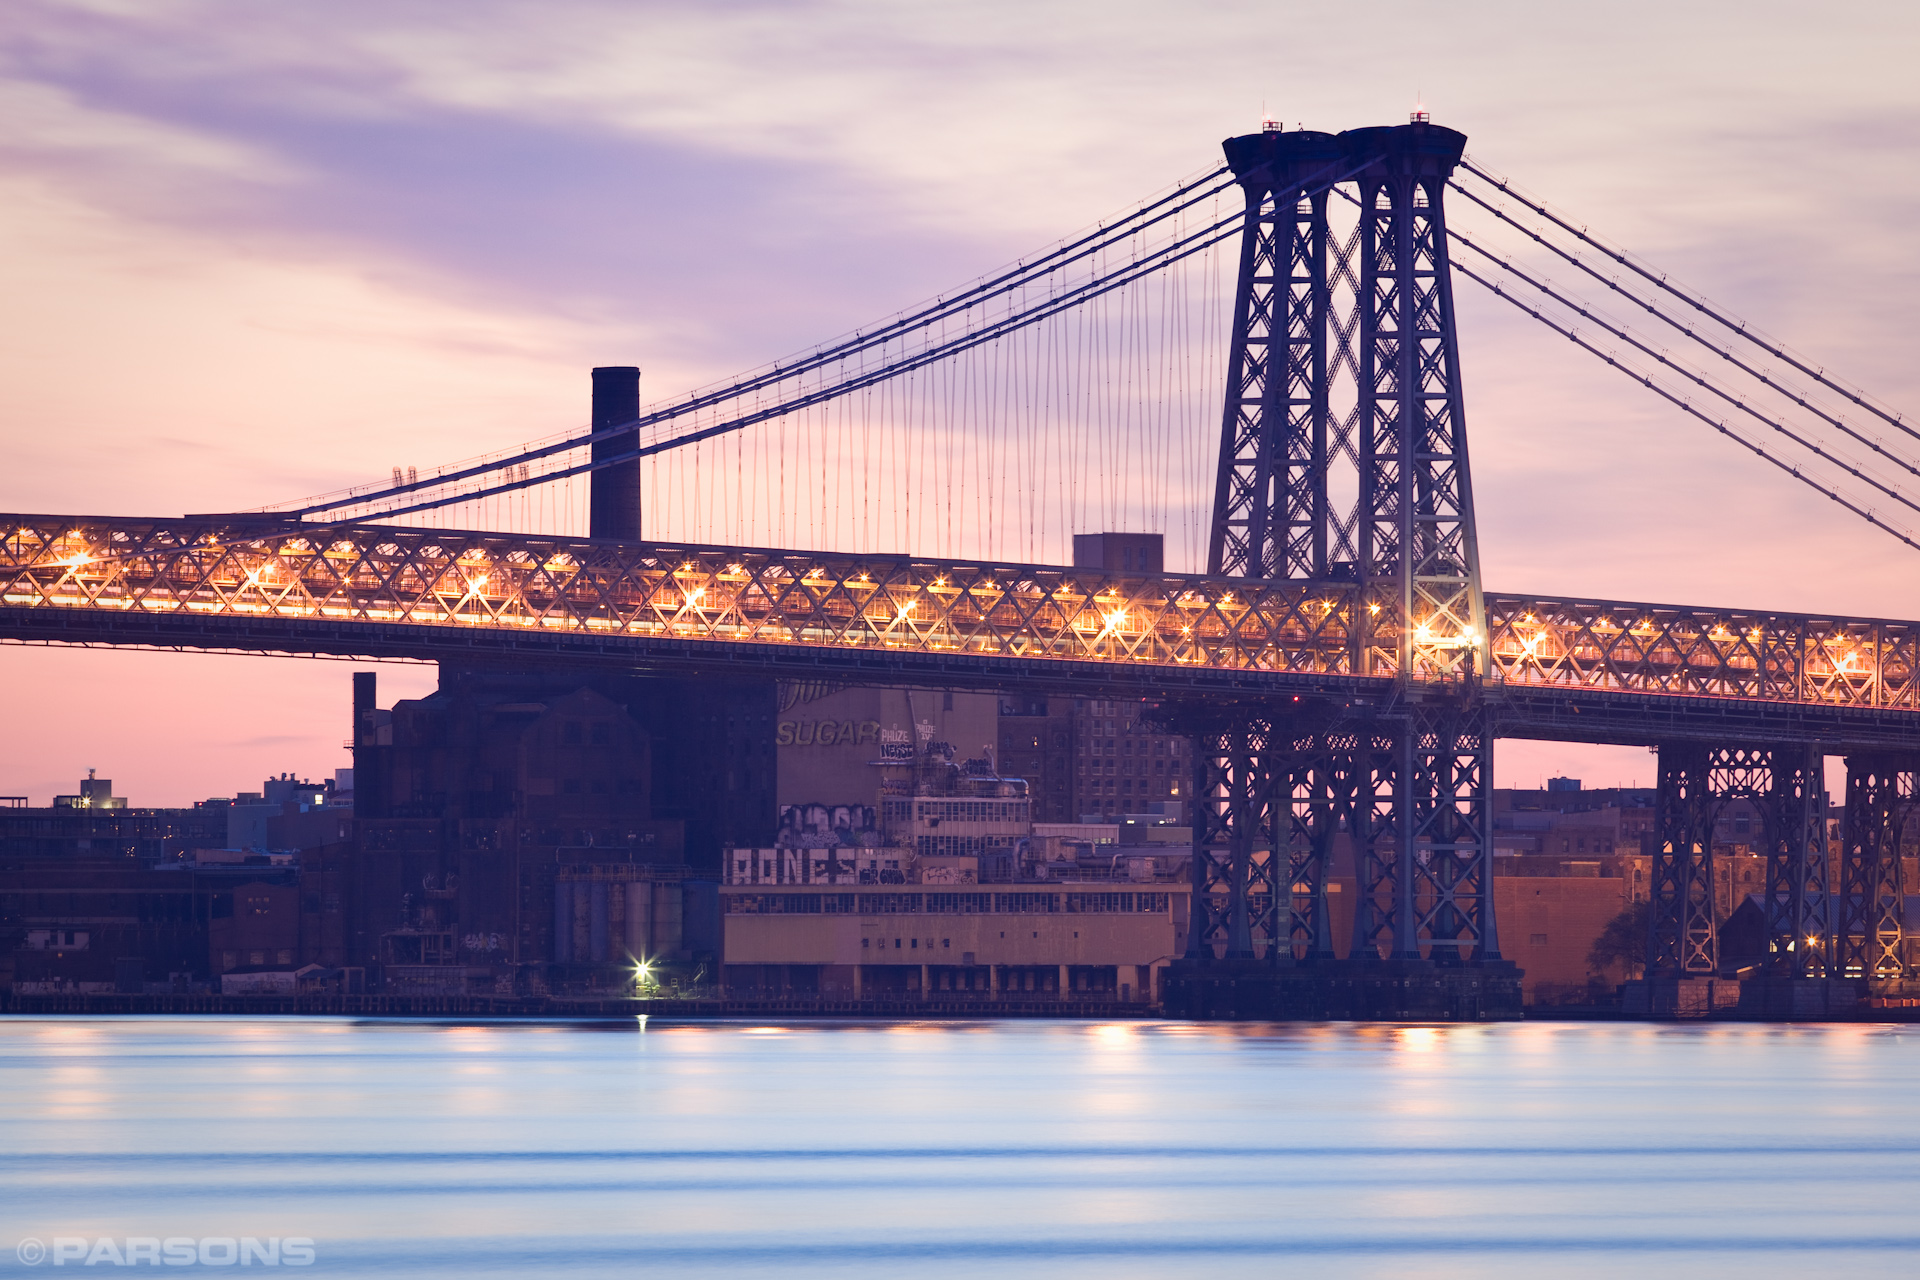 Civil-Engineering-Willamsburg-Bridge-New-York-Sunrise.JPG